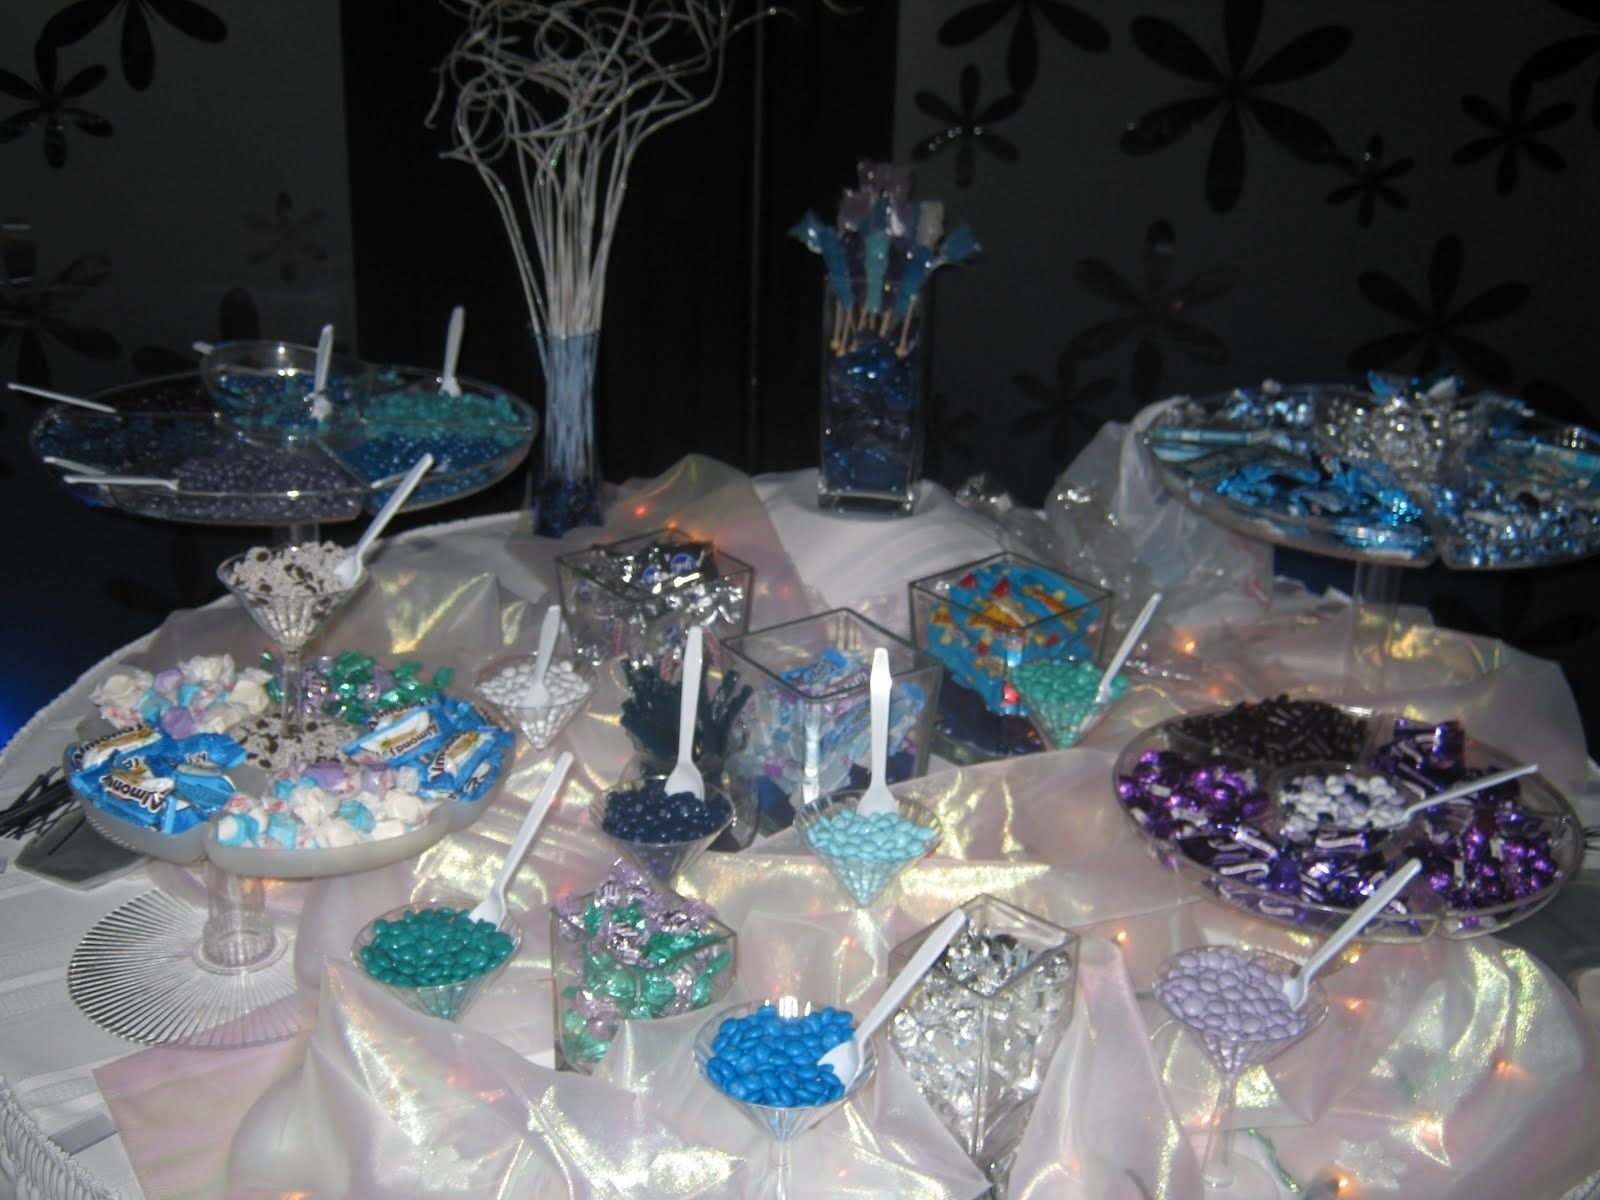 10 Fabulous Winter Wonderland Sweet 16 Ideas these would work well for a winter wonderland themed party too 2020